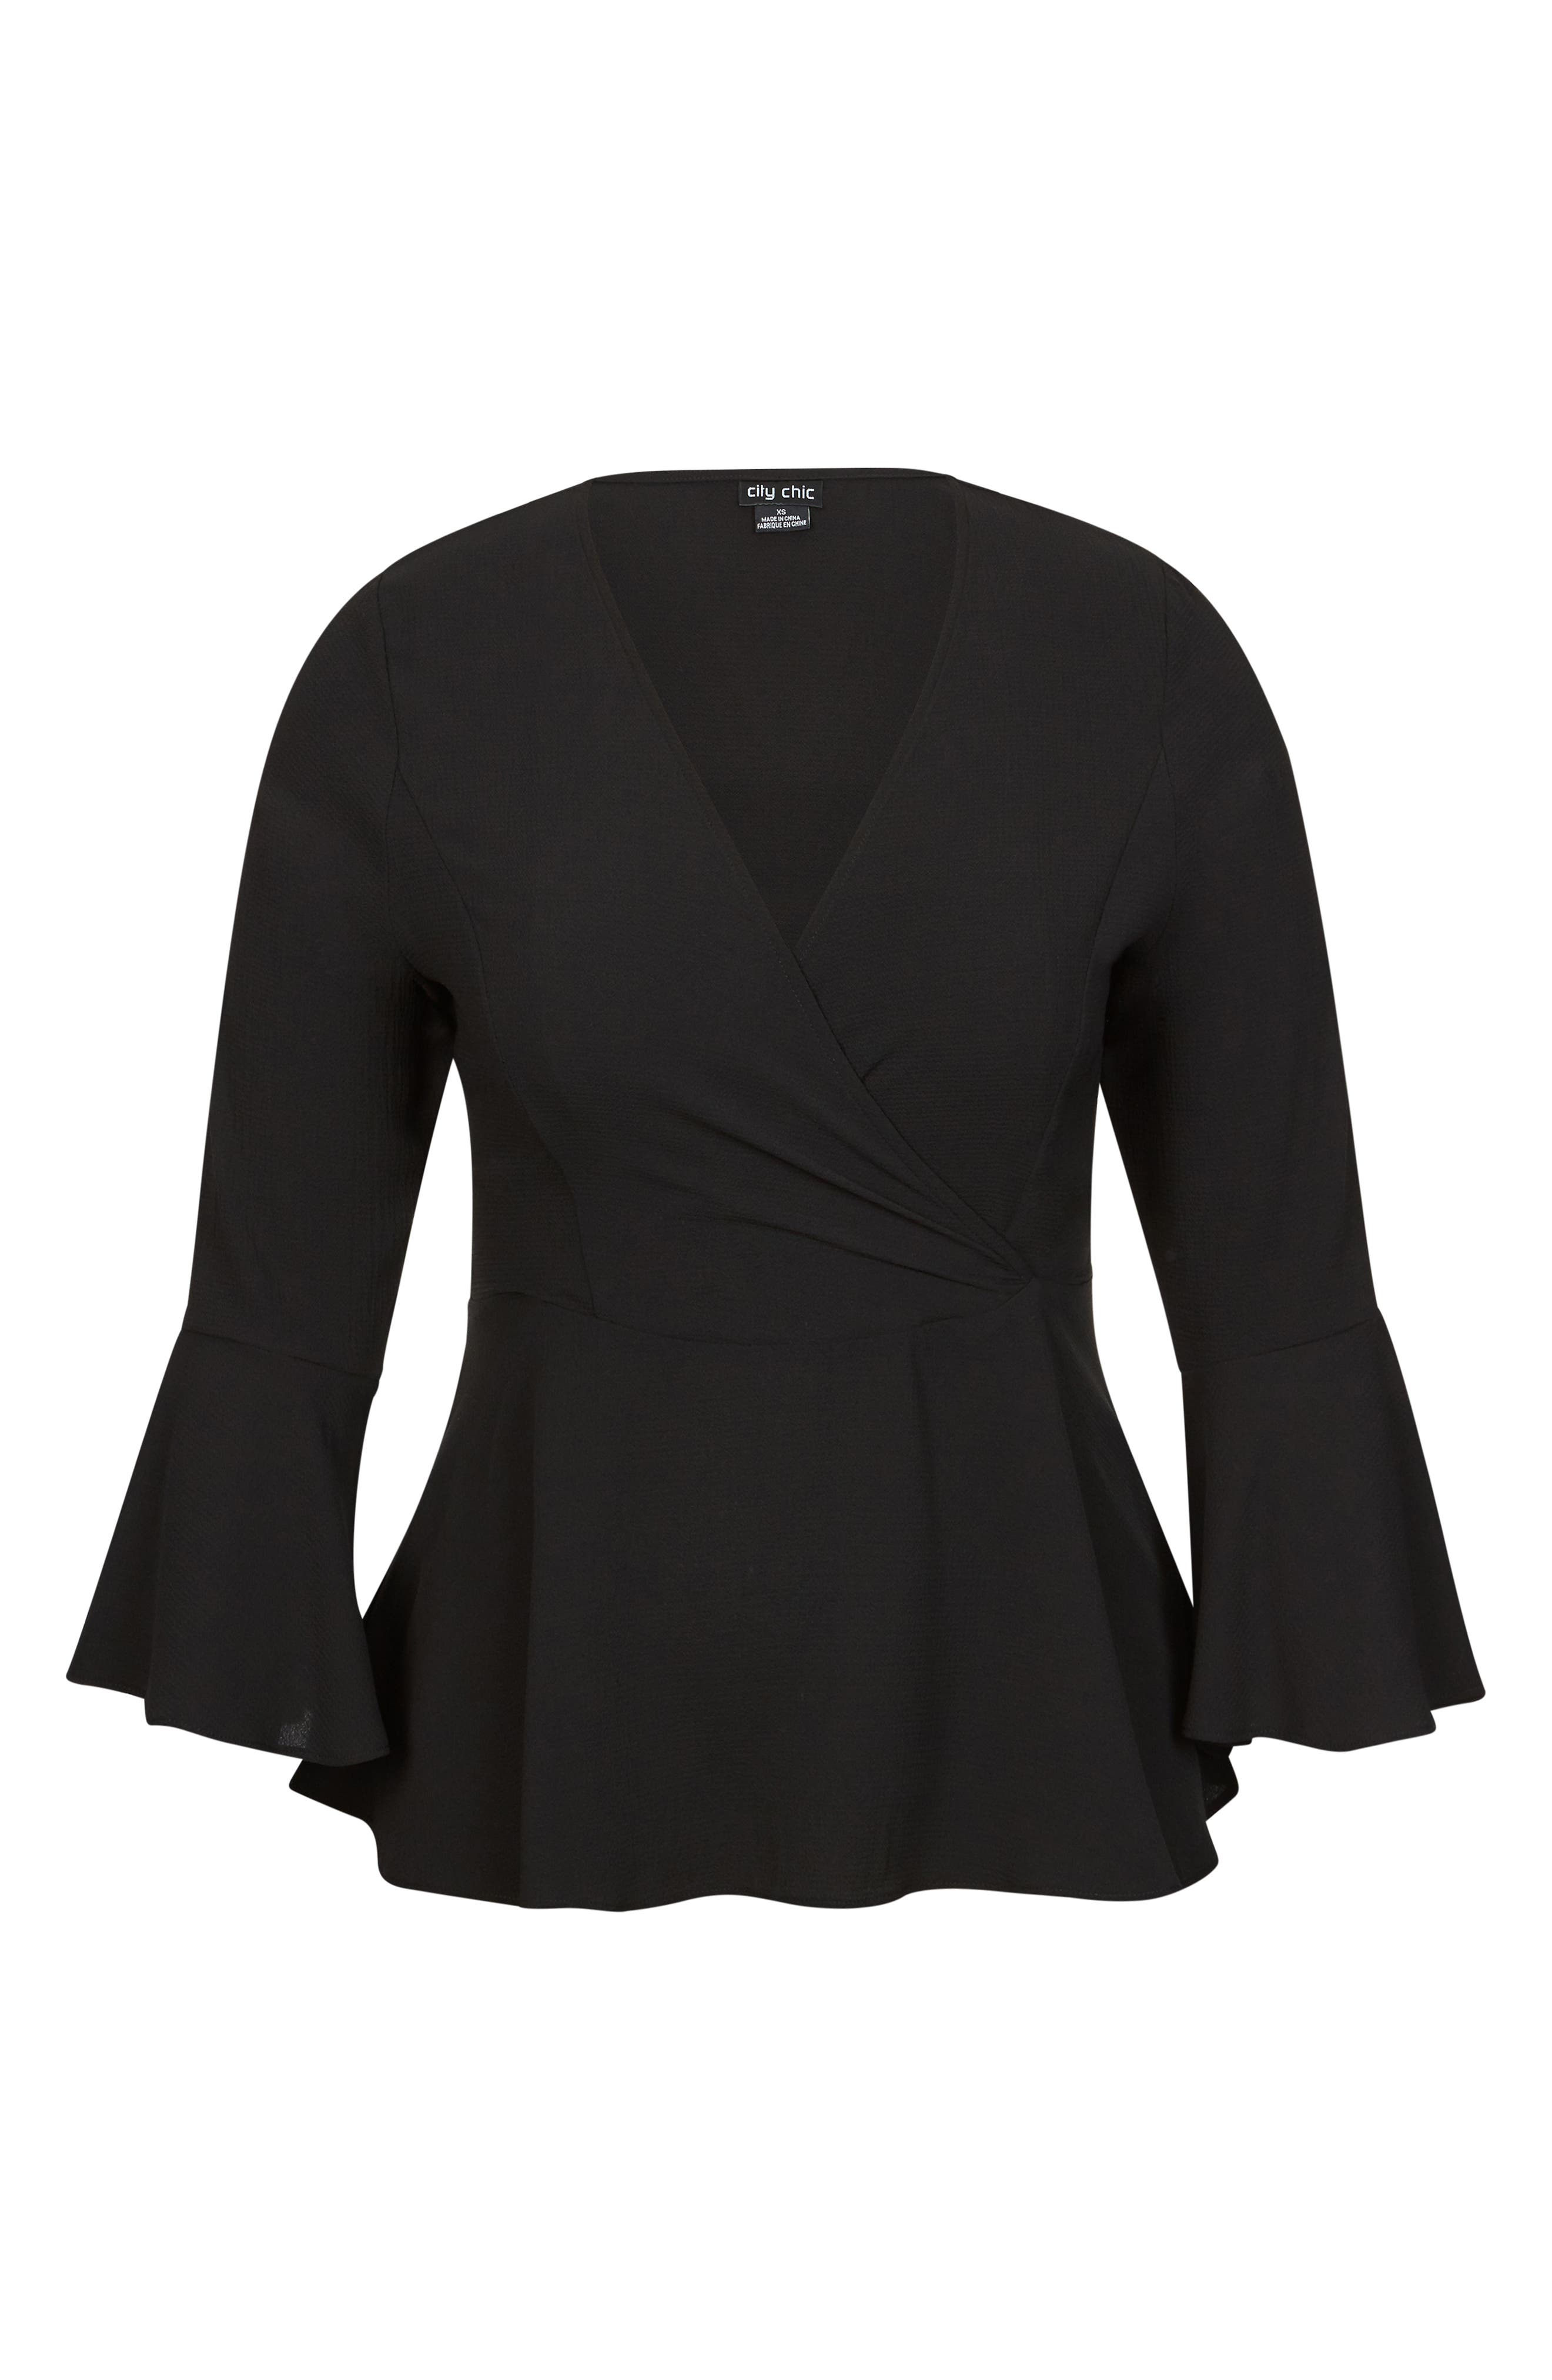 CITY CHIC, Sweetly Tied Top, Alternate thumbnail 3, color, BLACK